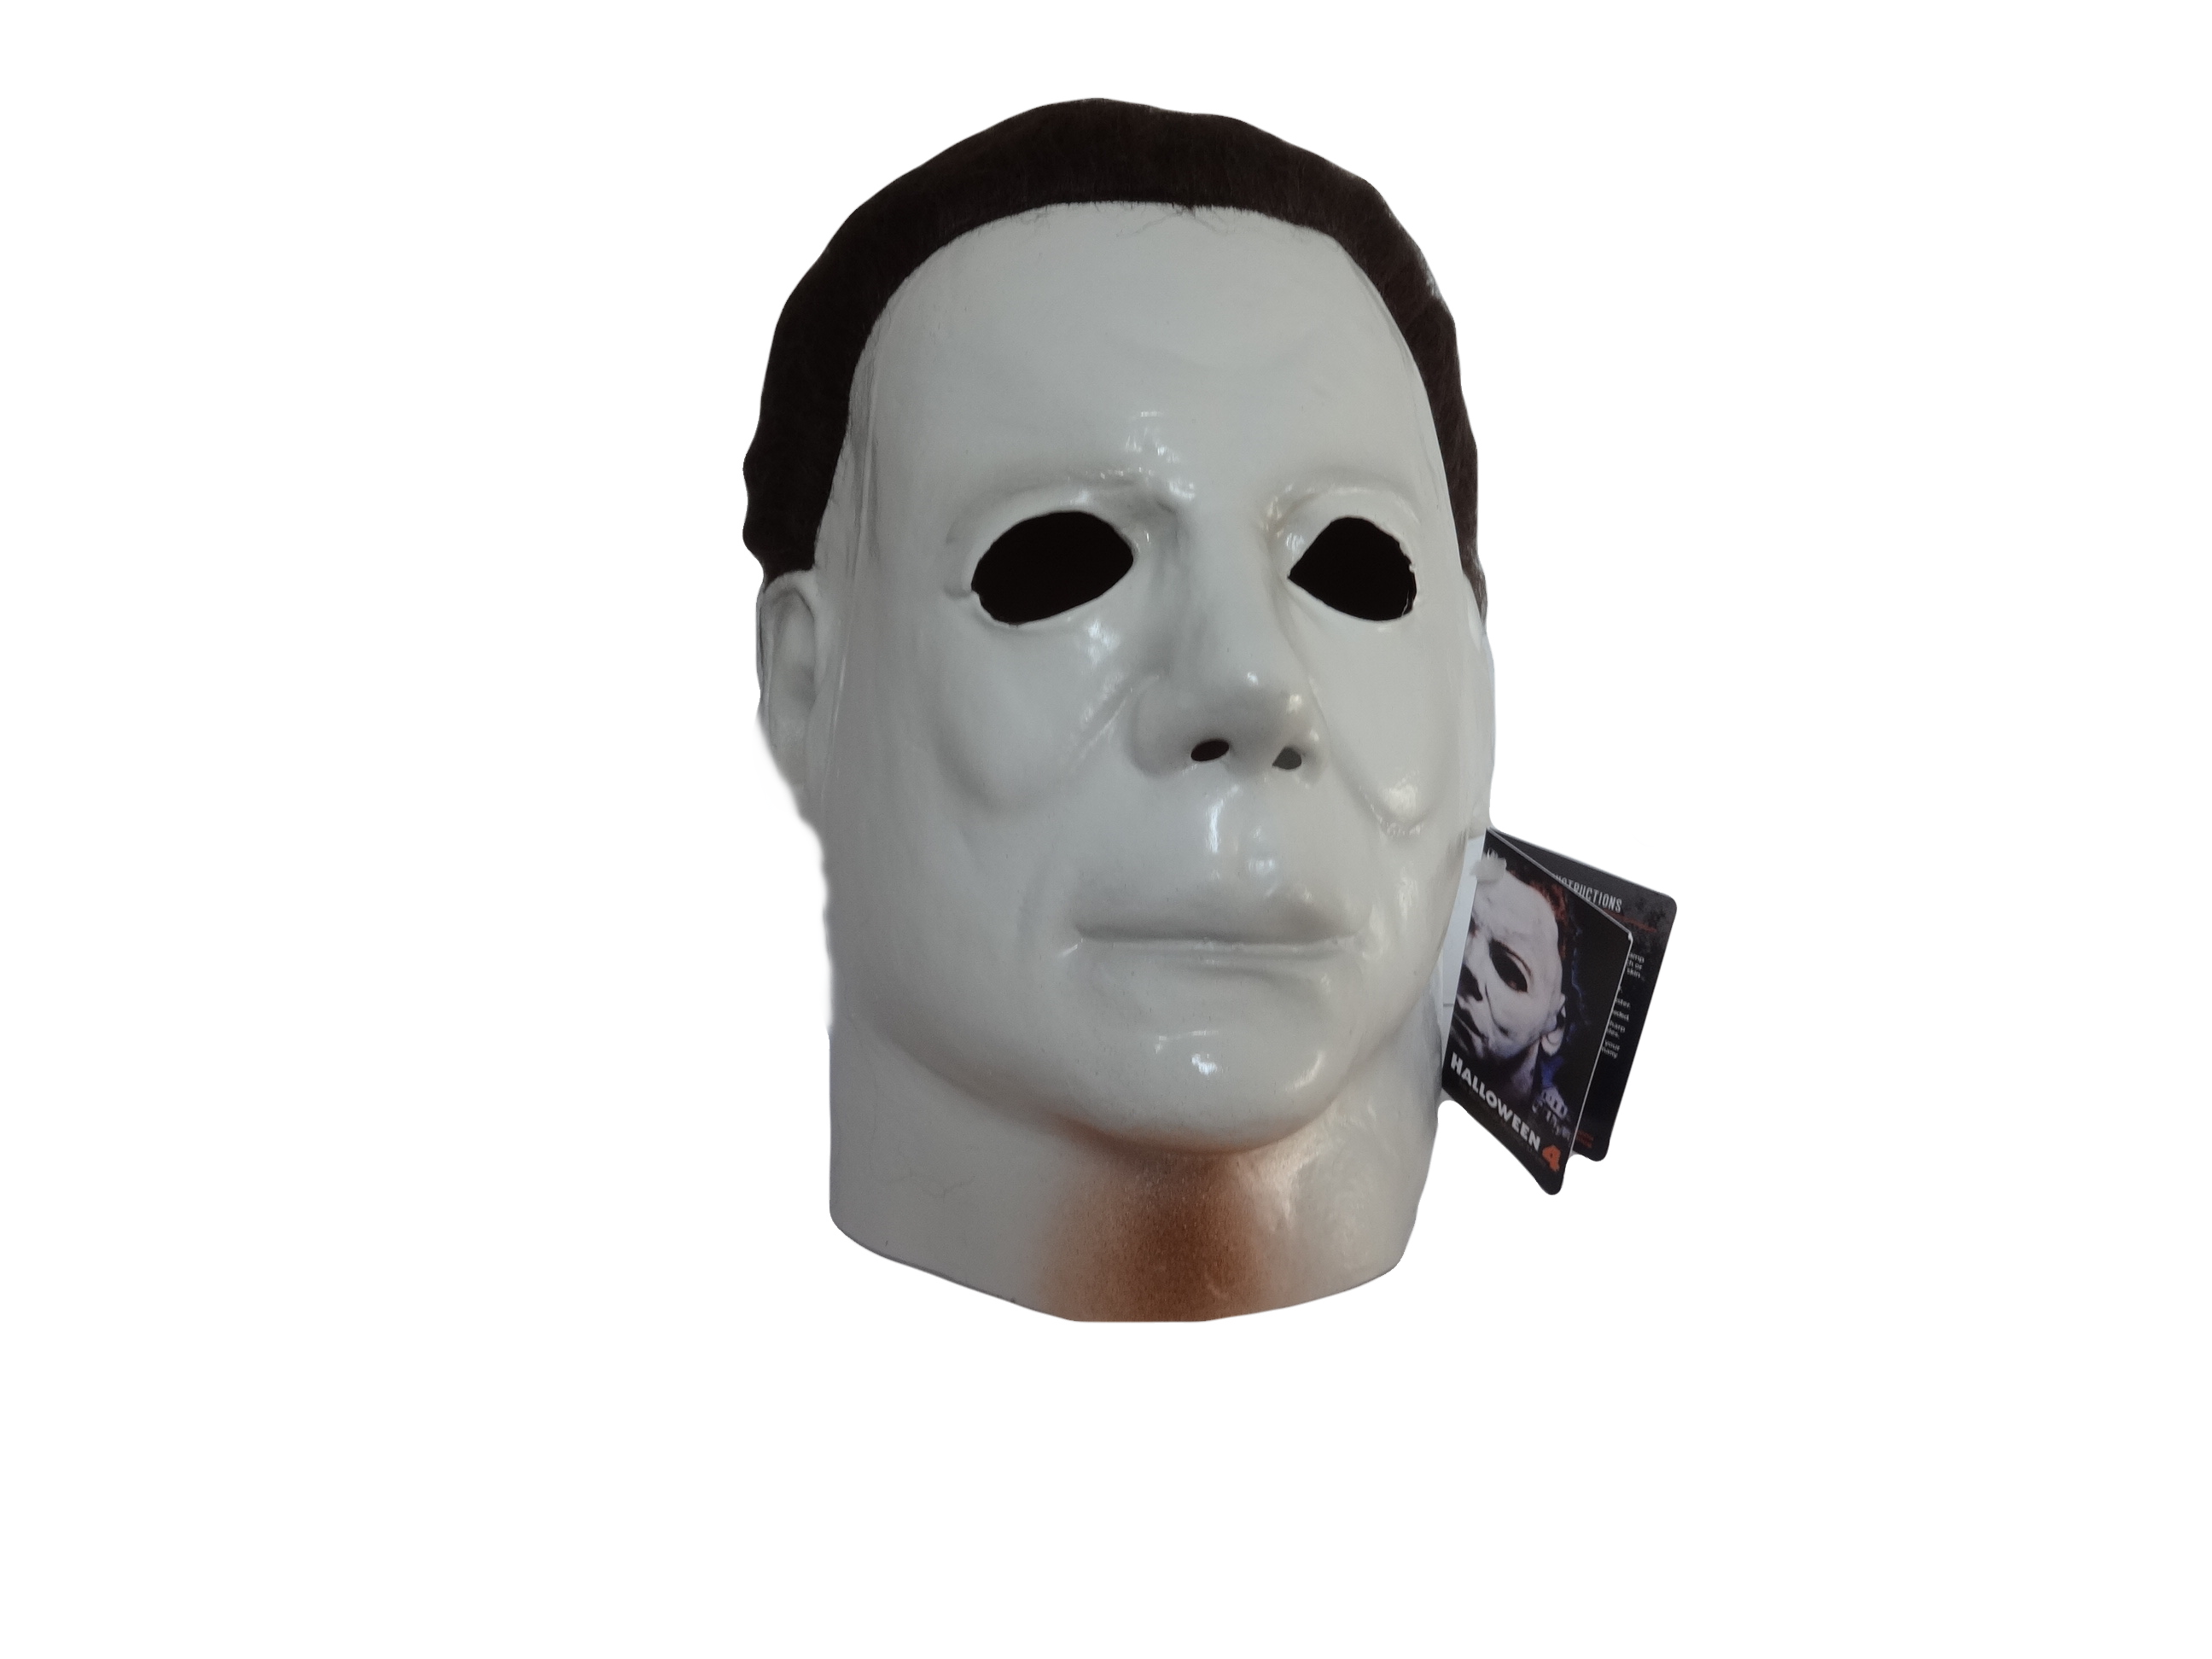 Halloween 4 The Return Of Michael Myers Poster Mask Dominic S Horrors Michael Myers Michael Myers Poster Iconic Poster